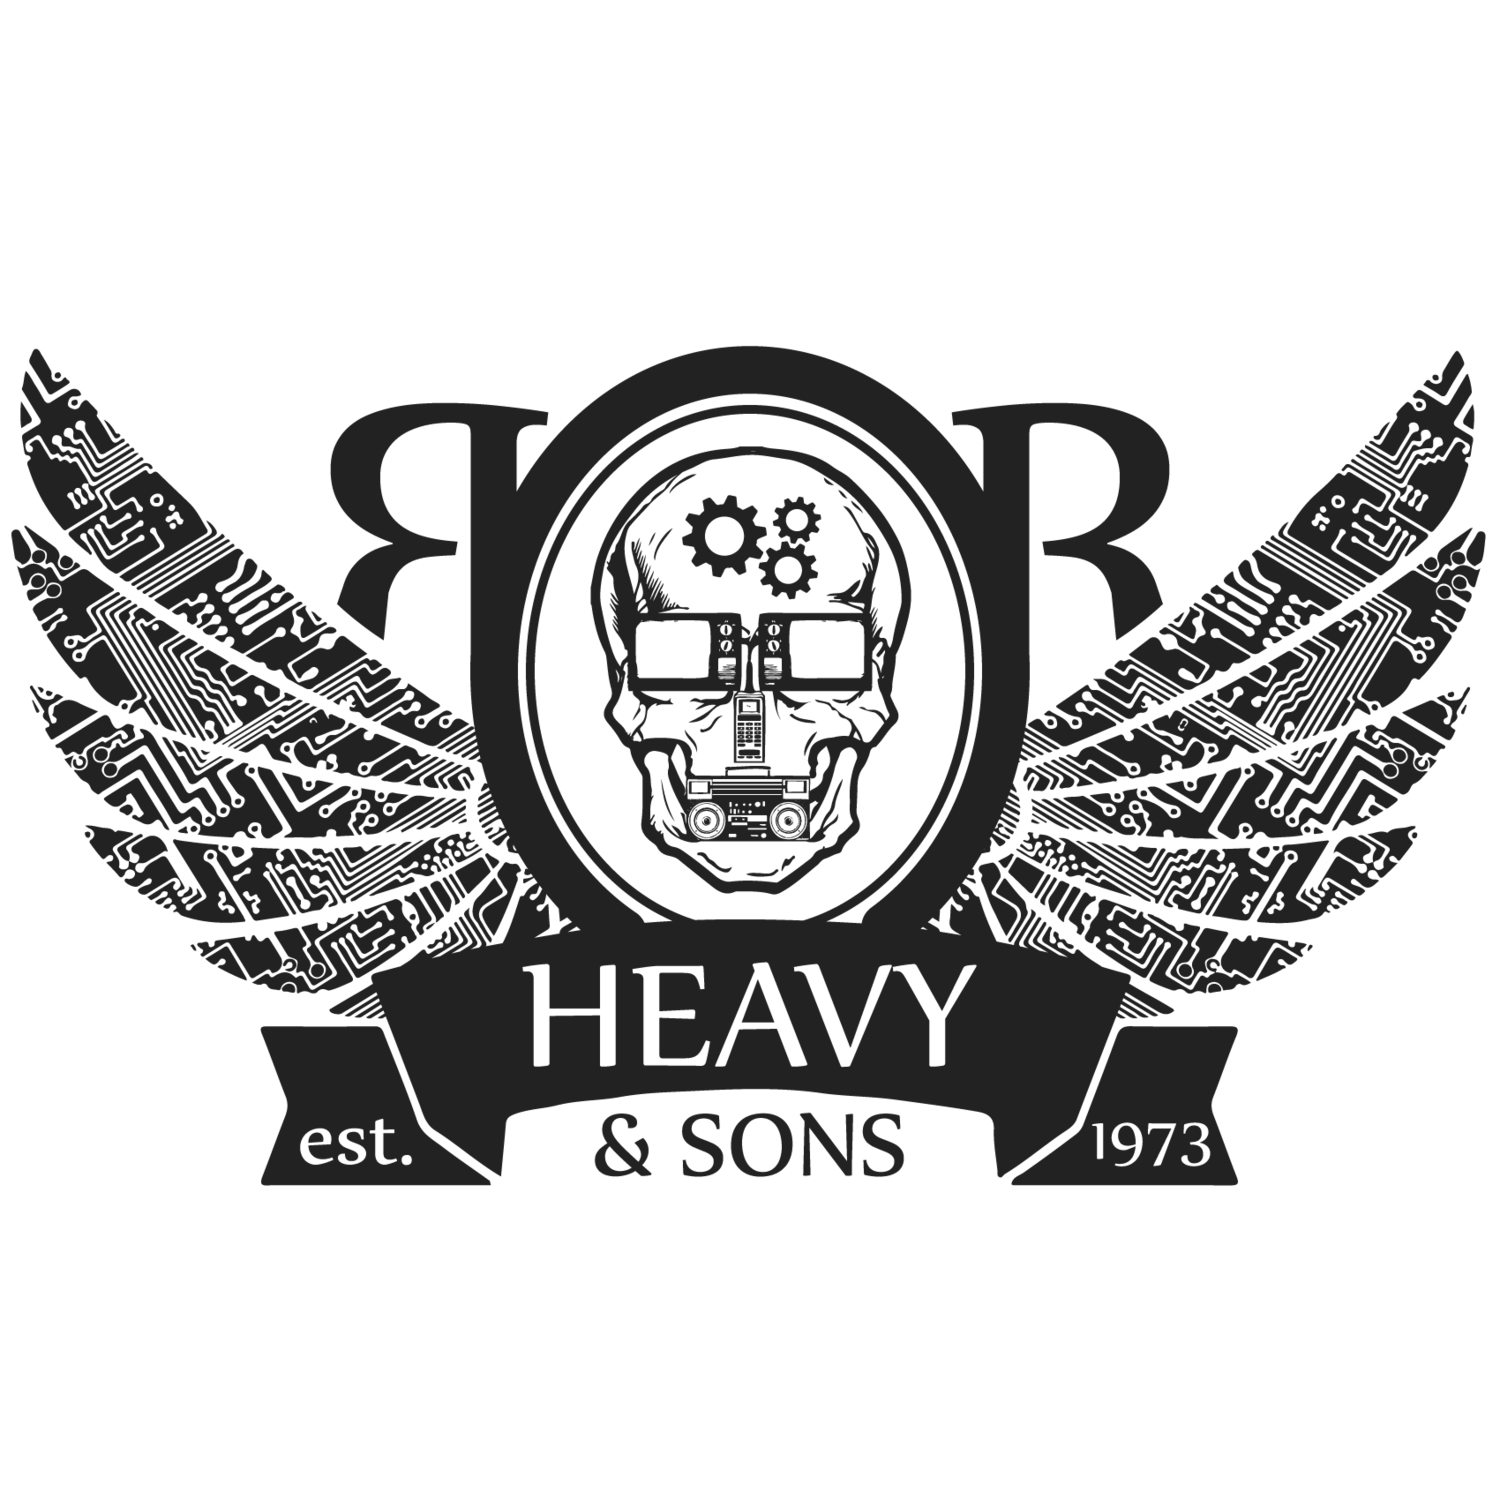 HEAVY & SONS